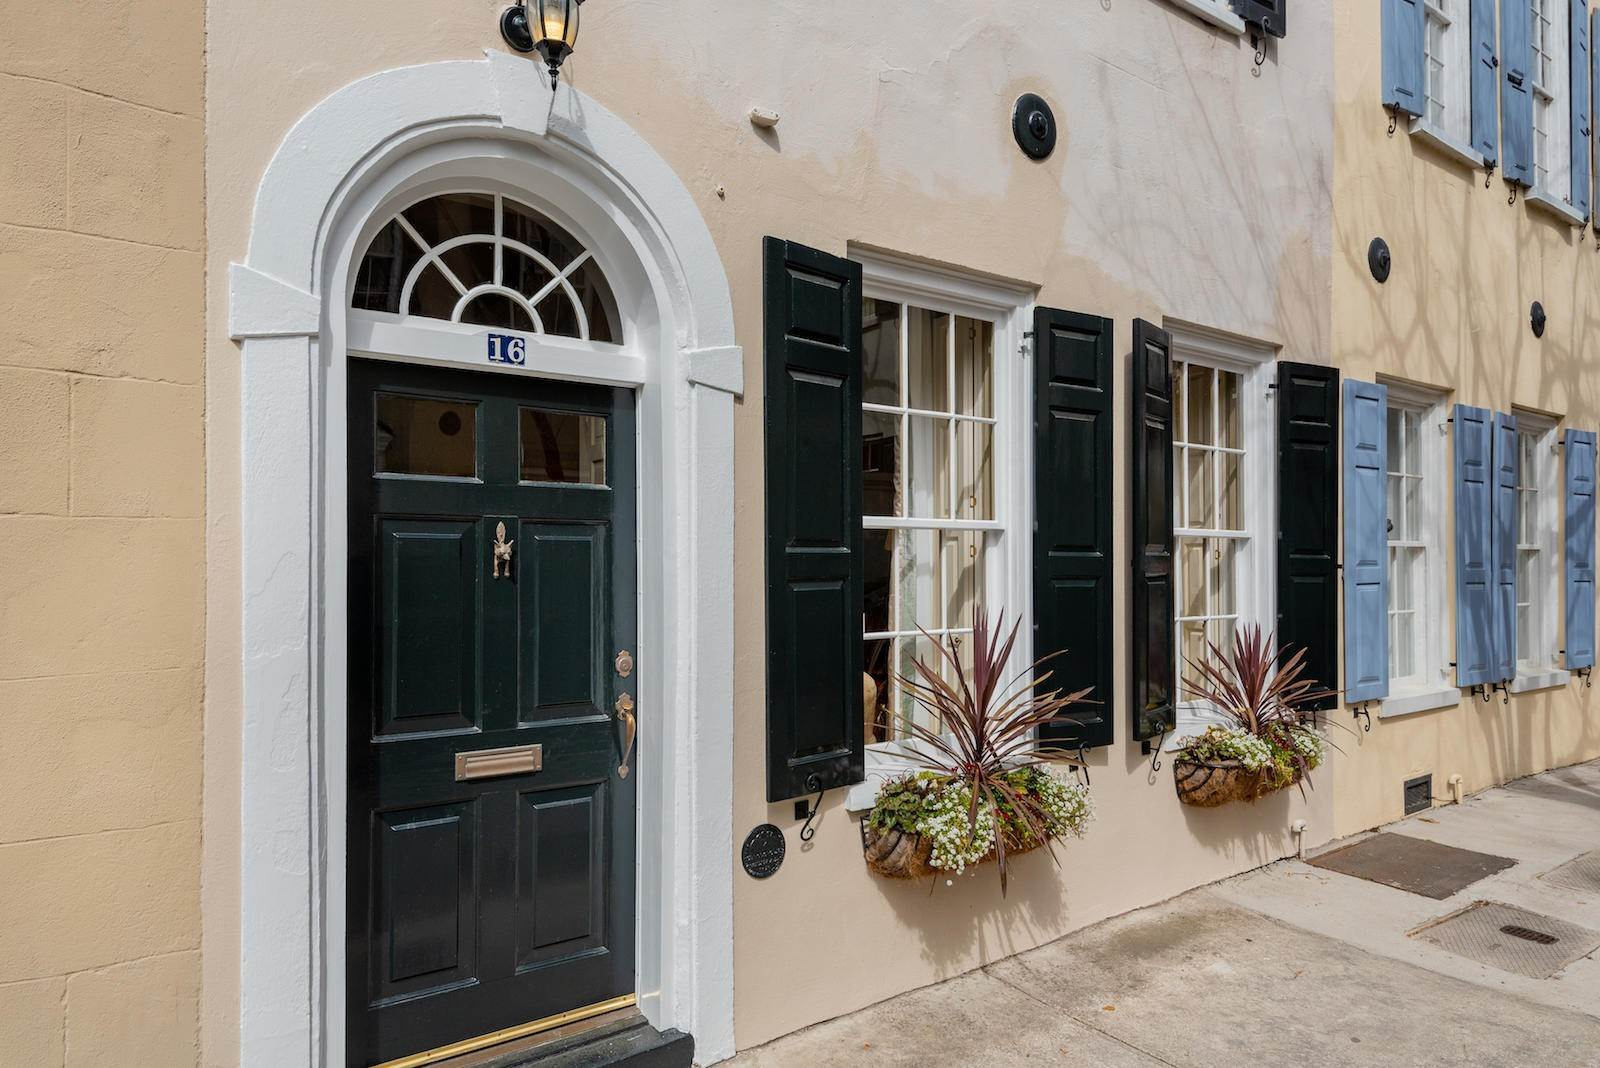 Villa/Townhouse for Sale at 16 Tradd Street Charleston, South Carolina,29401 United States